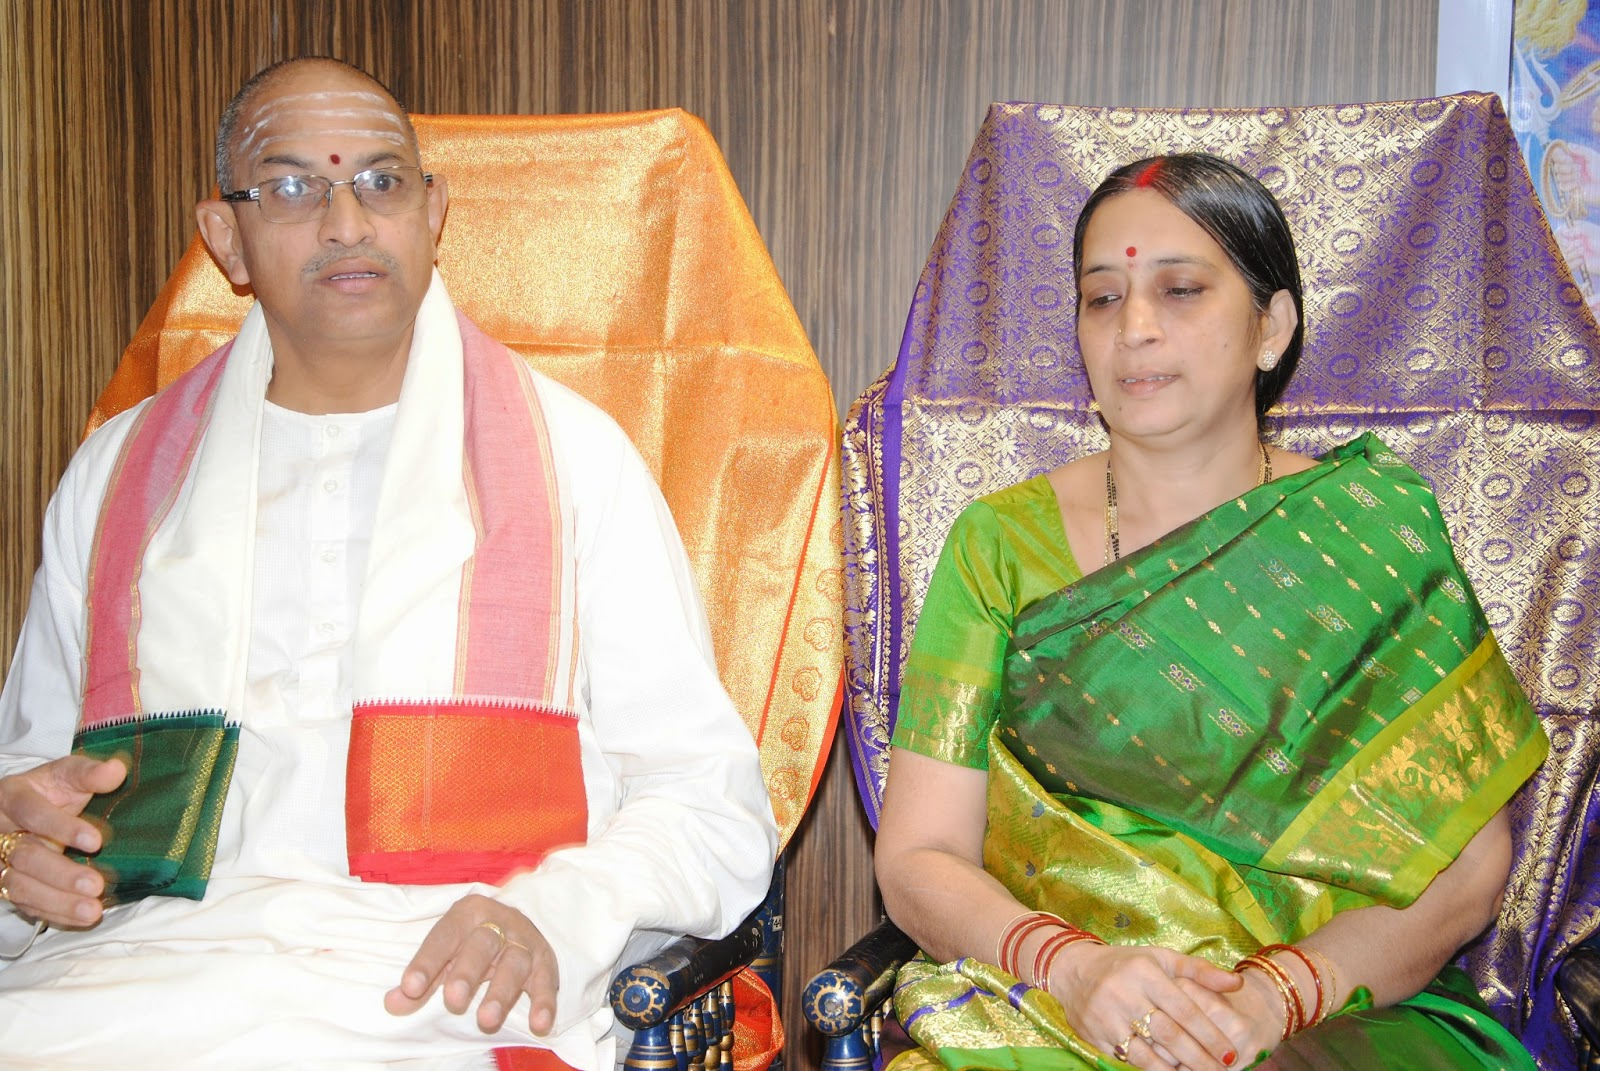 Chaganti Koteswara Rao with Srimati Subramanyeswary - HD family photos, images